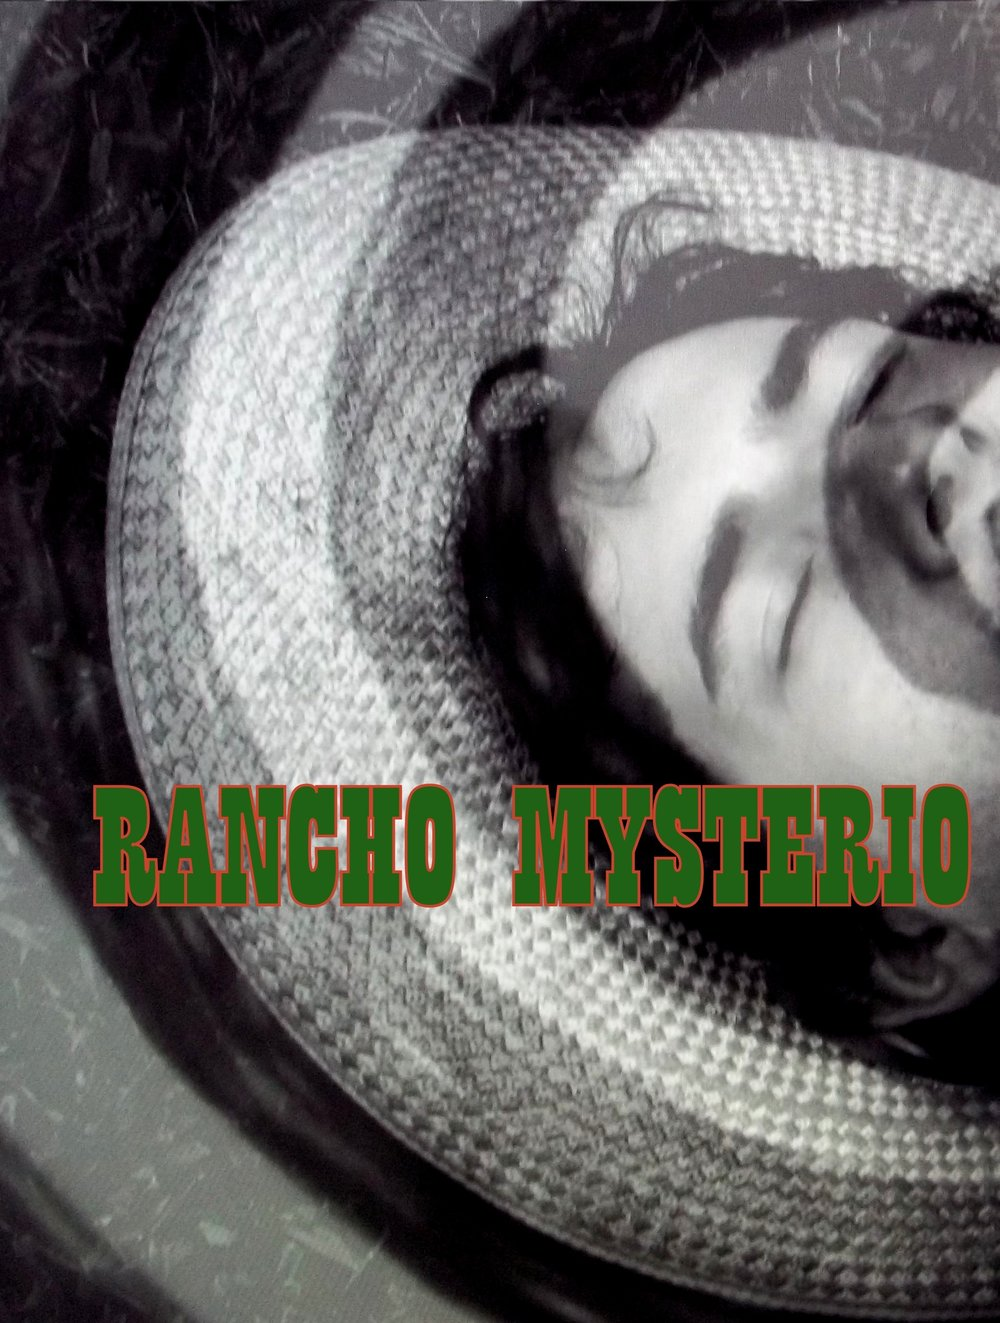 rancho mysterio merch visual by Mark Flake.JPG